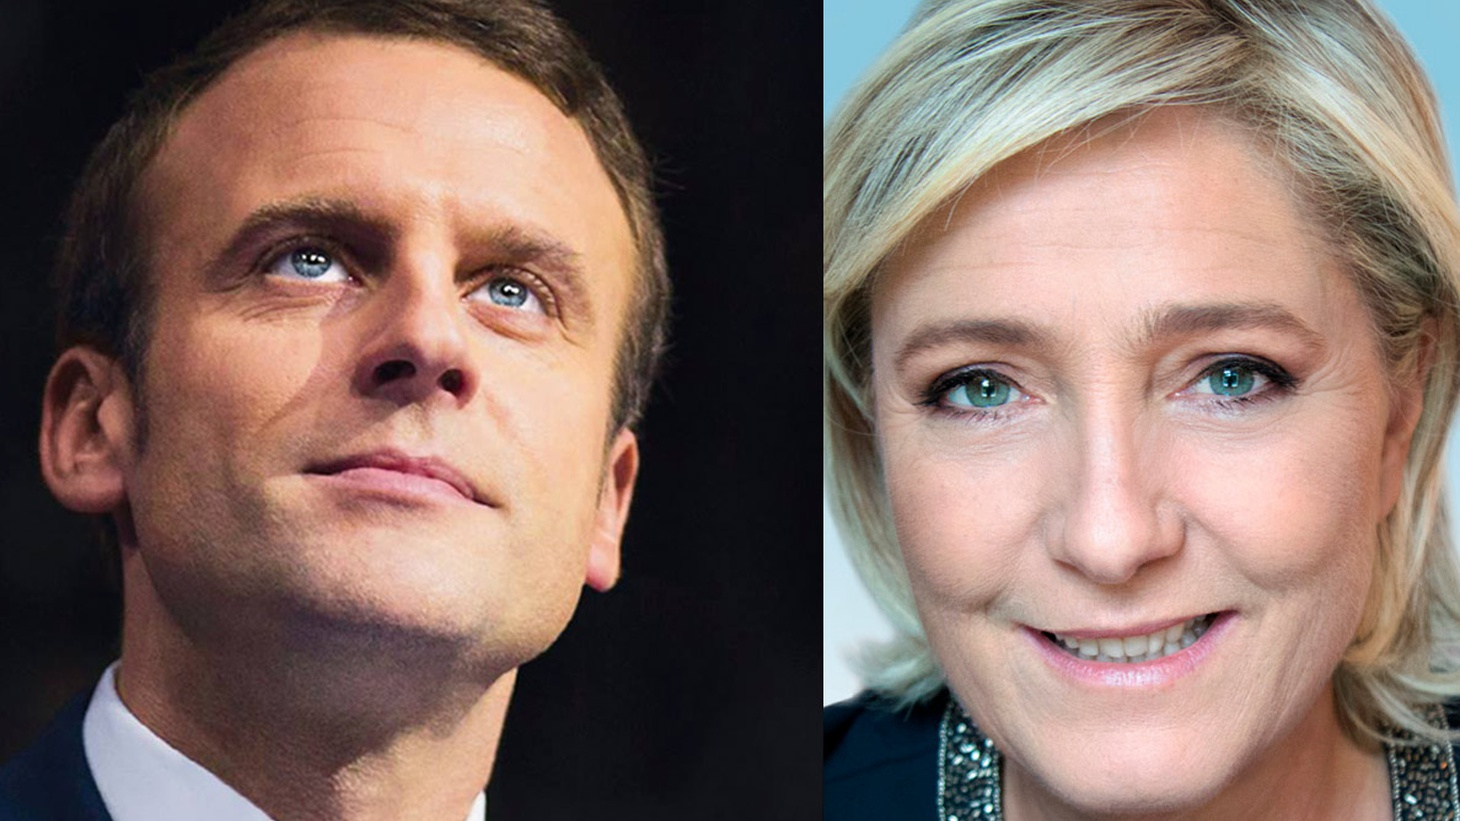 What's next for France and for European unity?